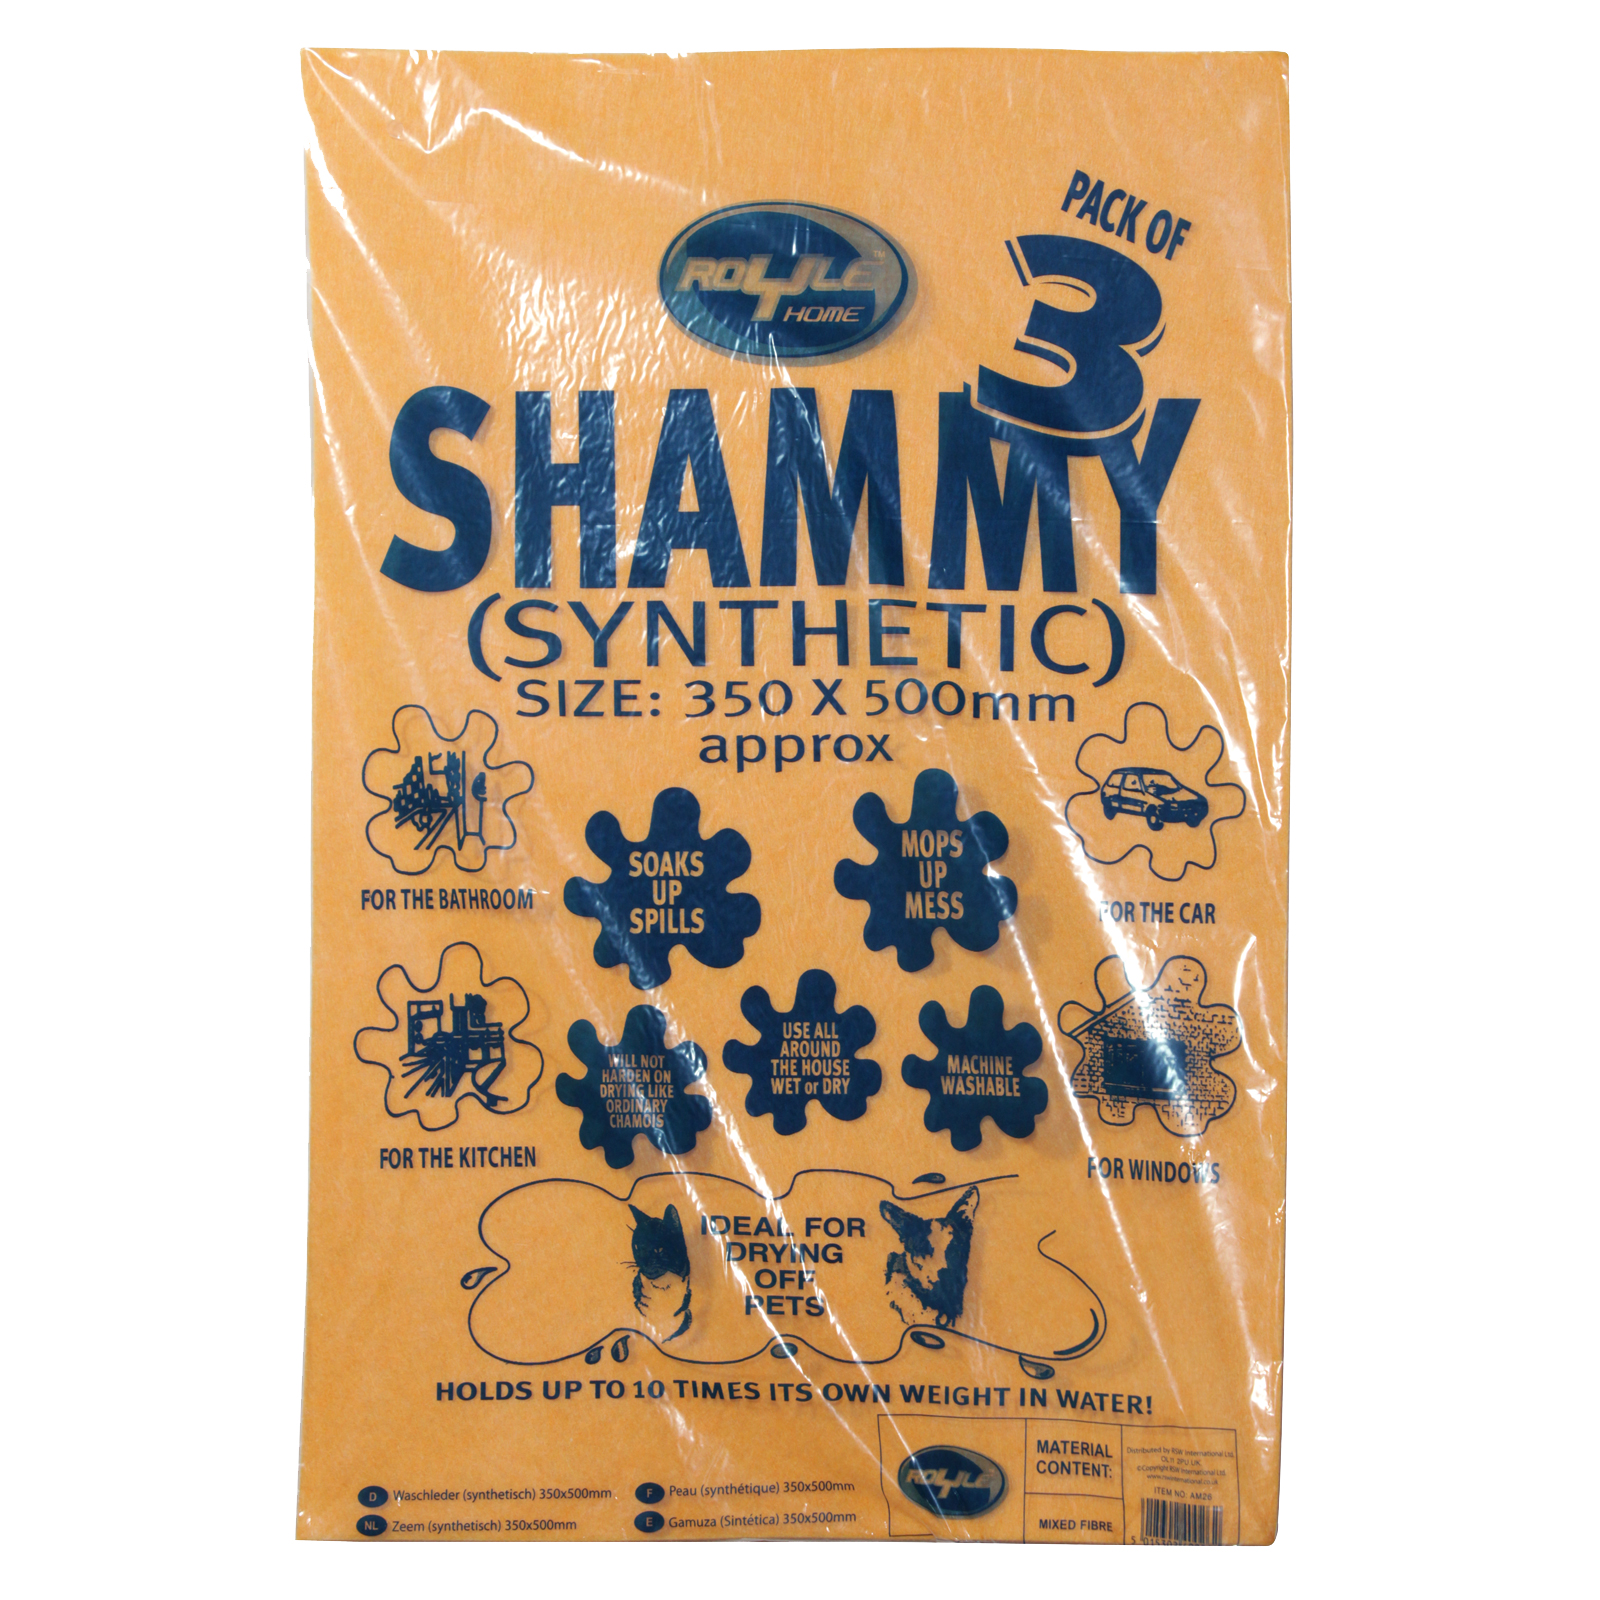 ROYLE SHAMMY 3PK SYNTHETIC 350X500MM X10